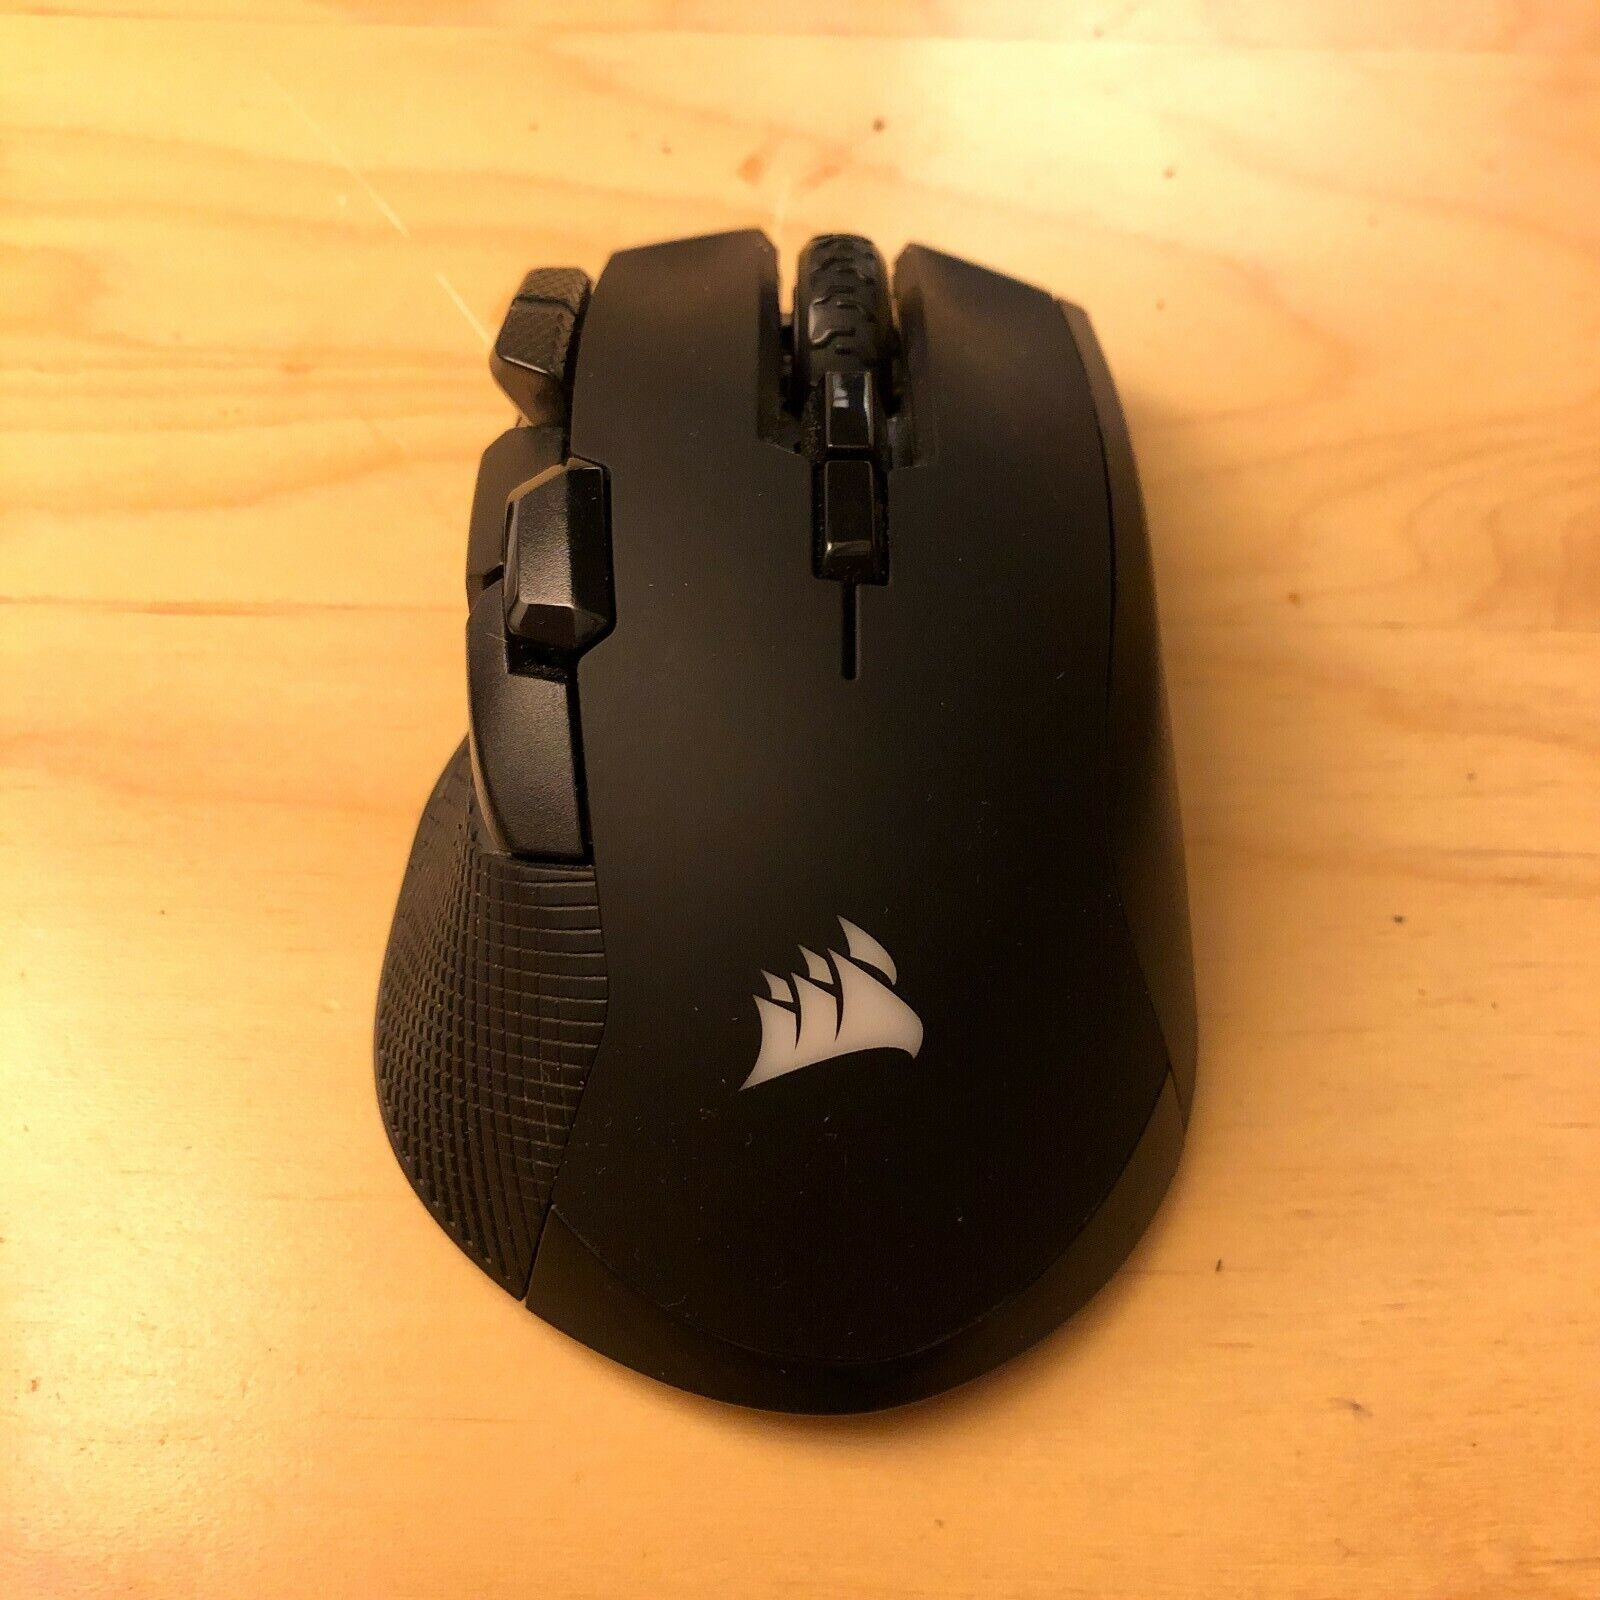 Corsair Ironclaw RGB Wireless Mouse Very Good Condition - $45.00